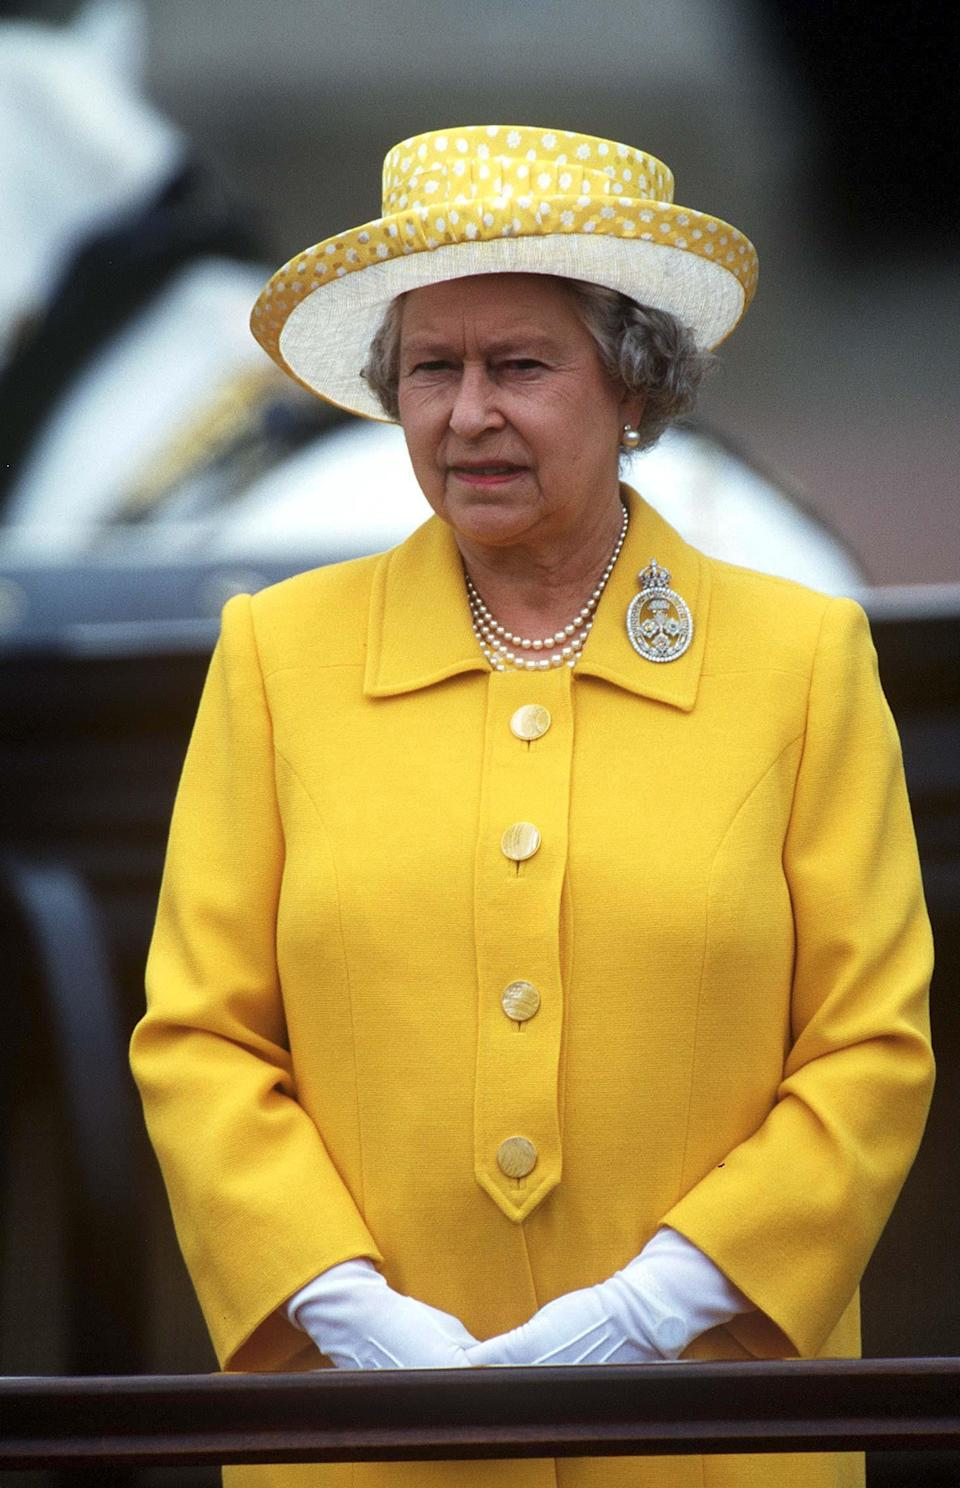 For the 1999 celebrations, Her Majesty opted for a bright yellow number and co-ordinating hat. (Rex pictures)